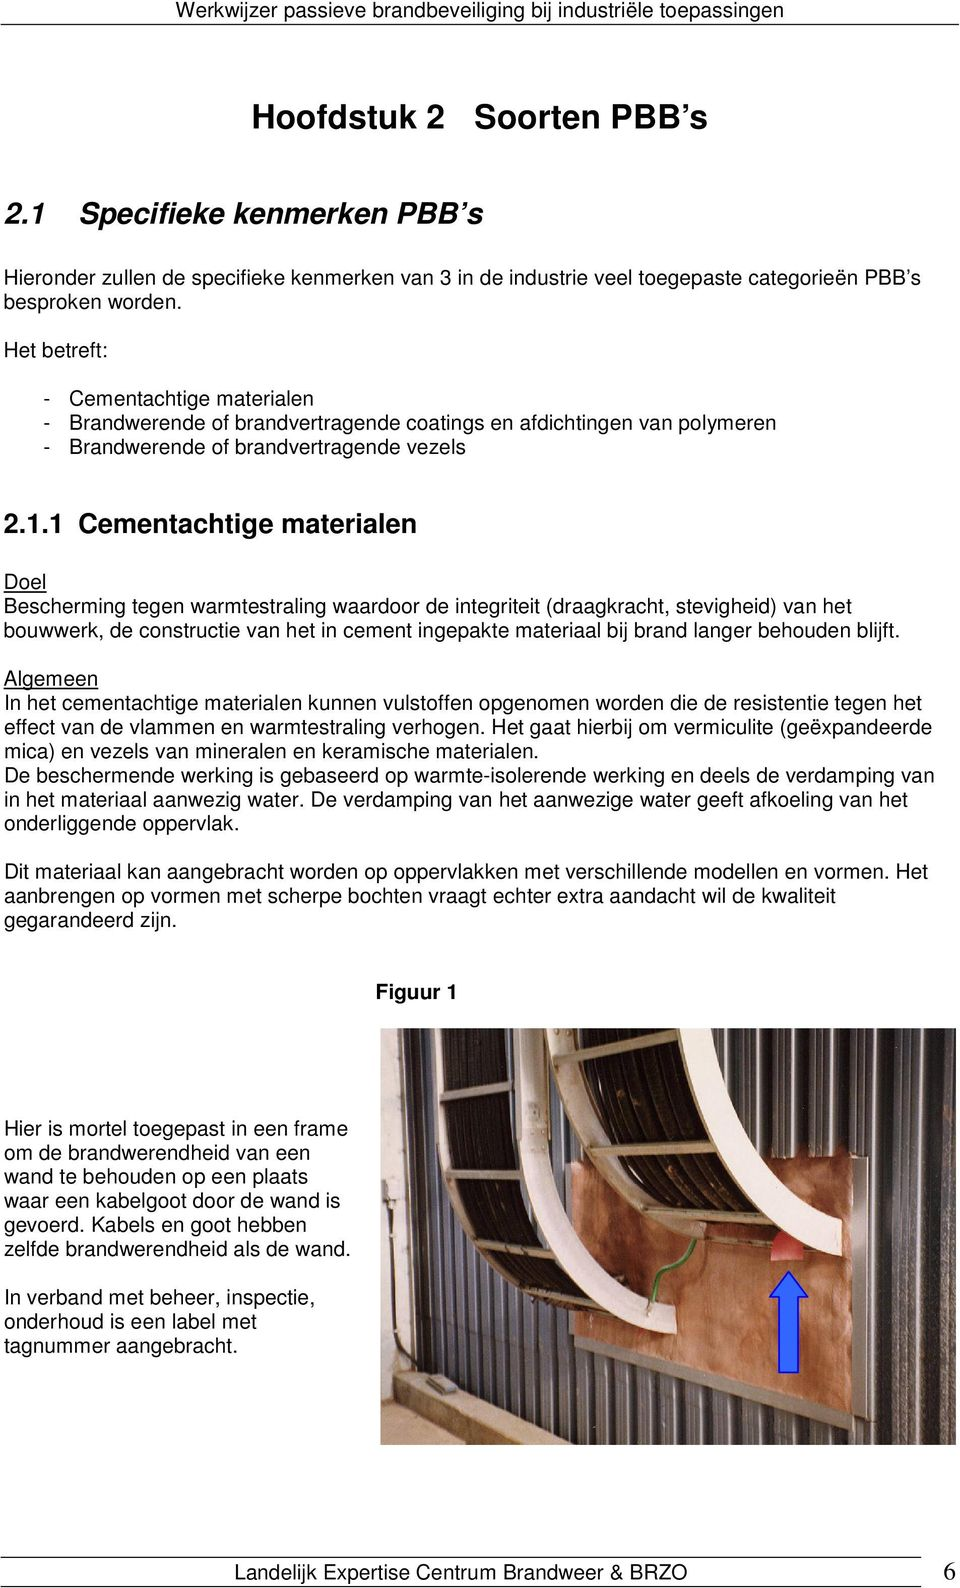 Het betreft: - Cementachtige materialen - Brandwerende of brandvertragende coatings en afdichtingen van polymeren - Brandwerende of brandvertragende vezels 2.1.